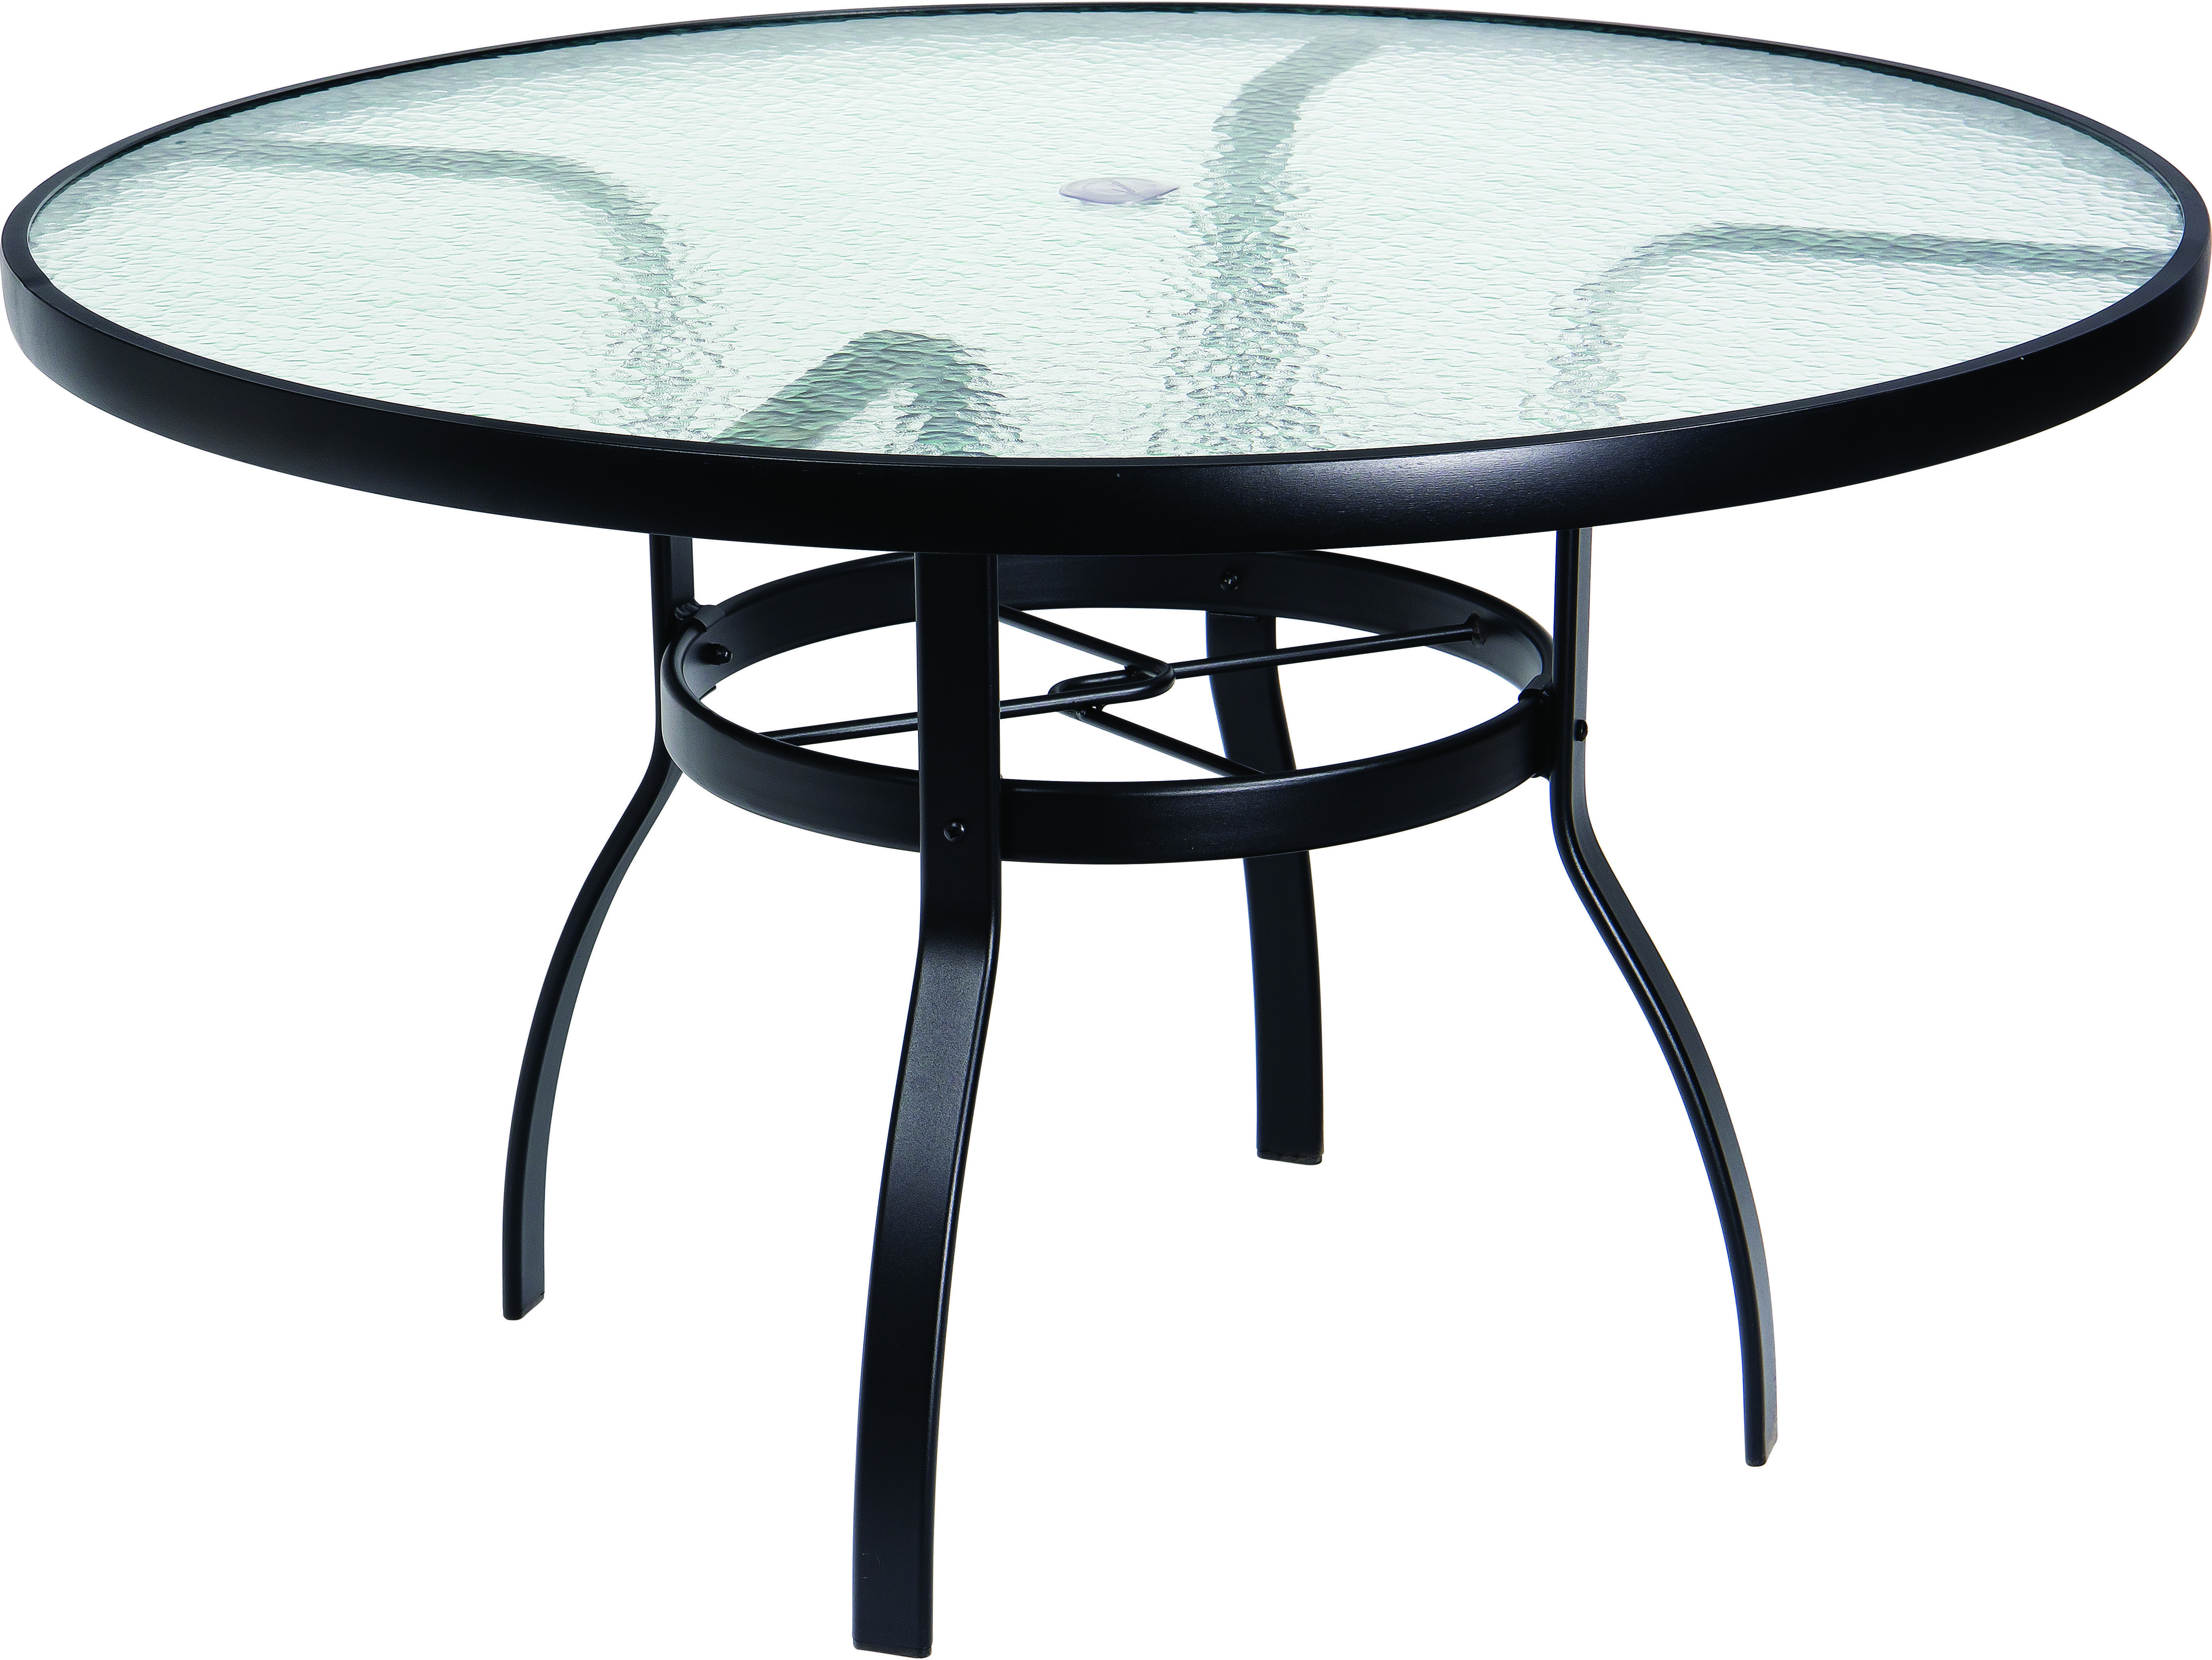 Woodard Aluminum Deluxe 48 Wide Round Obscure Glass Top Table With Umbrella Hole Glass Top Table Round Outdoor Table Metal Table [ jpg ]